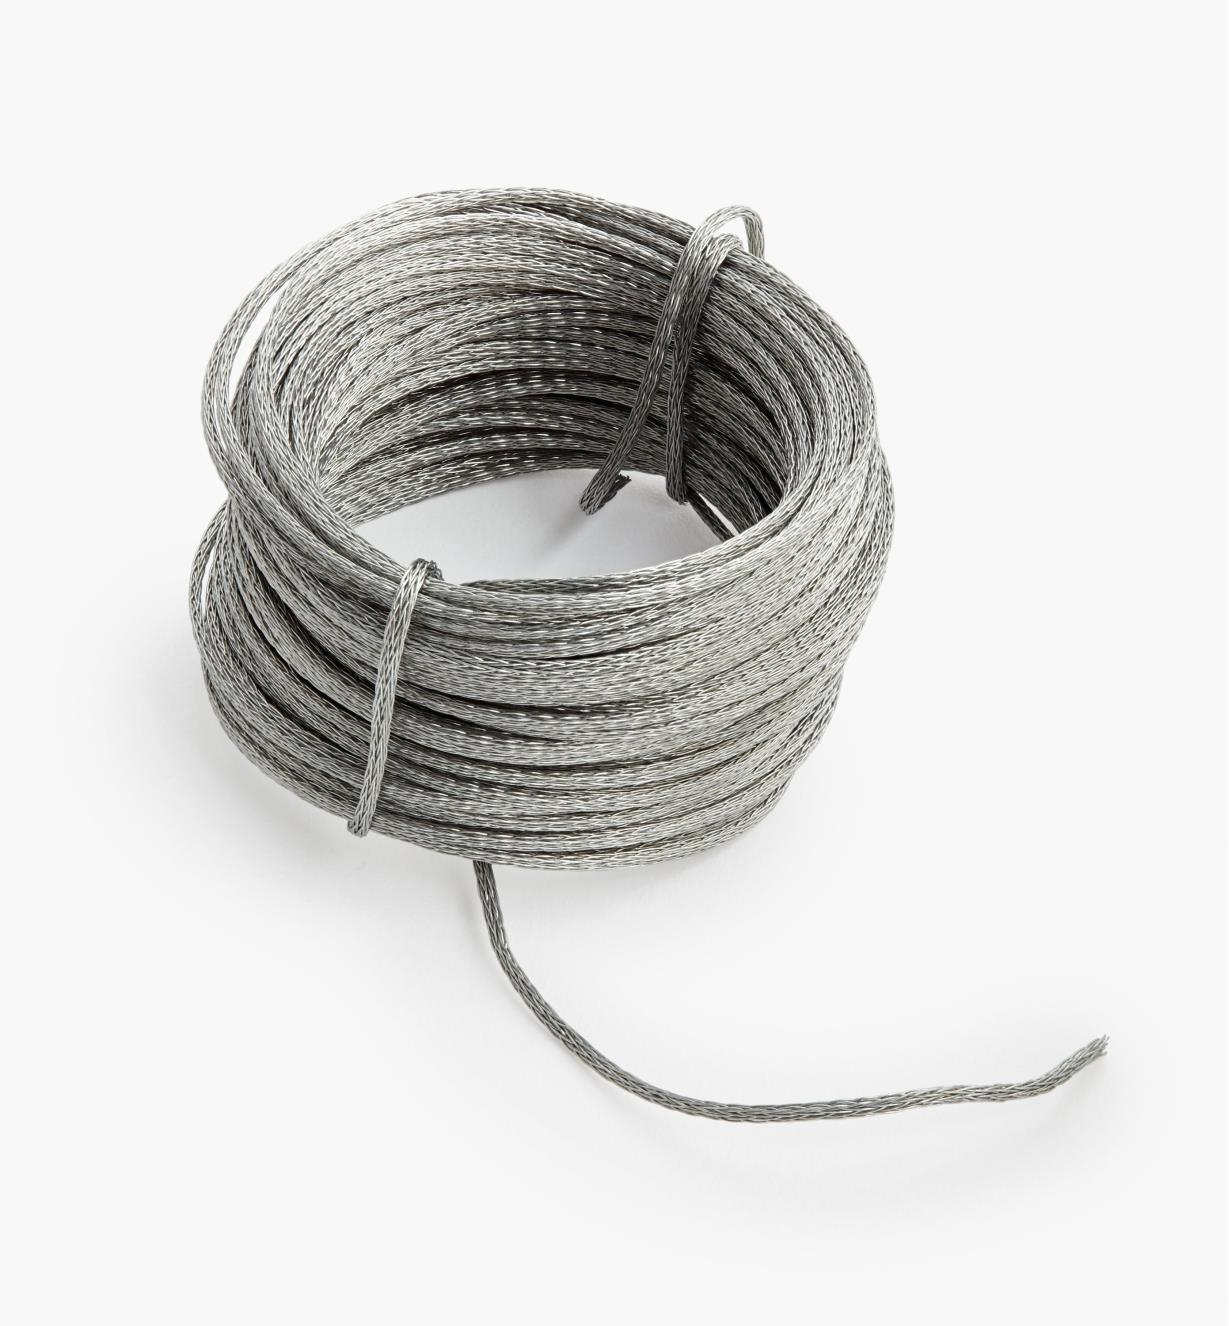 00F1125 - Braided Stainless-Steel Picture Wire, 50'